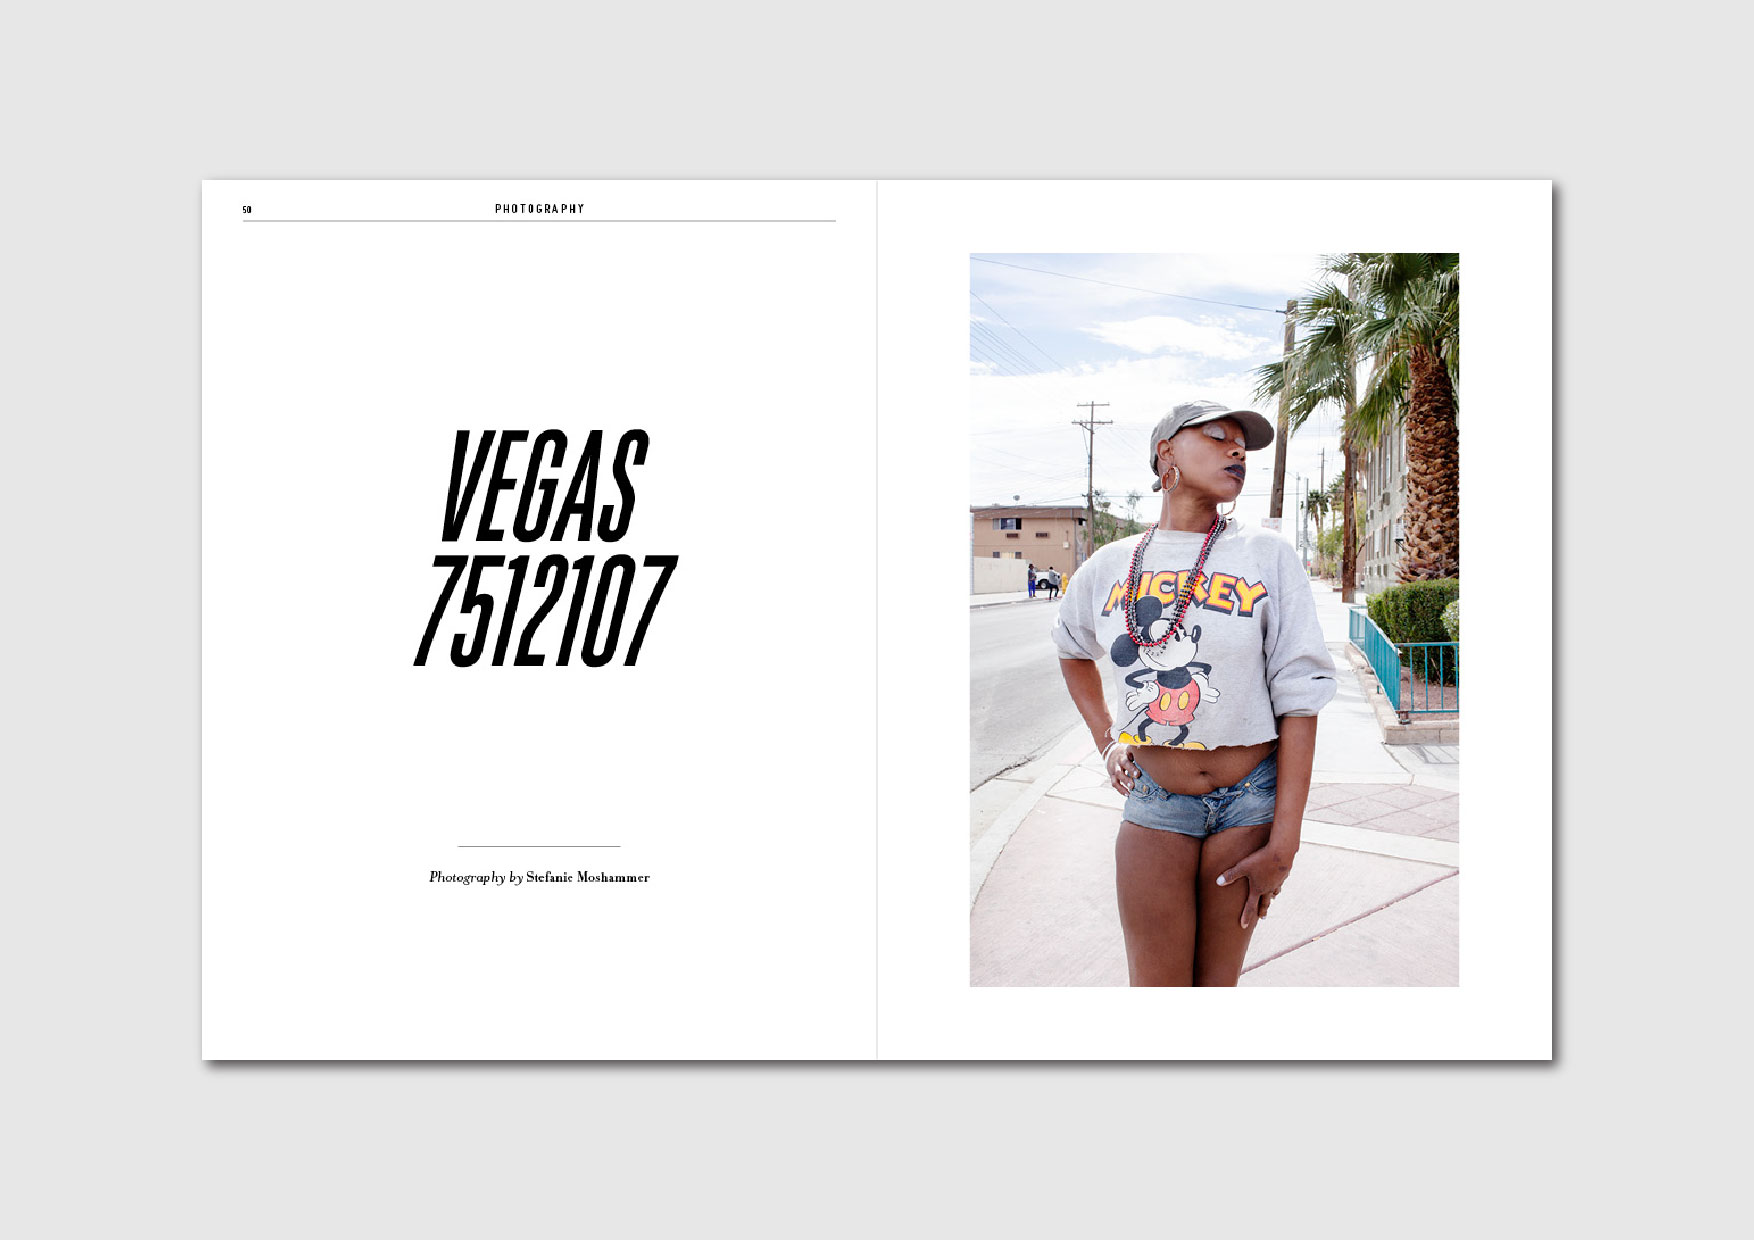 Vegas 7512107:  photo series by Stefanie Moshammer